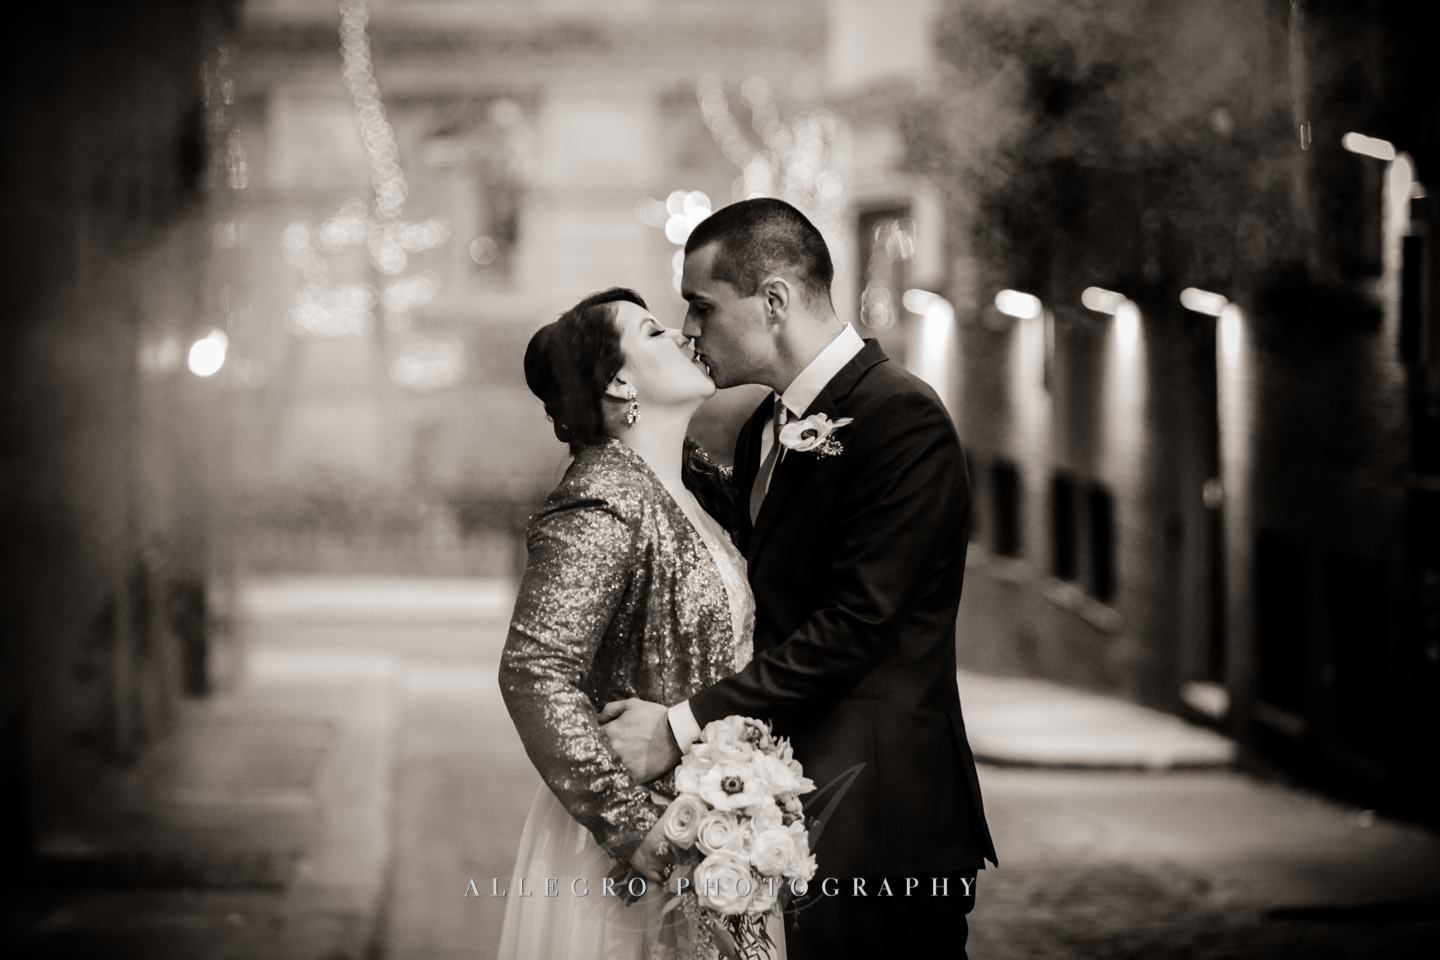 smokey alley way kiss in downtown boston -photo by Allegro Photography